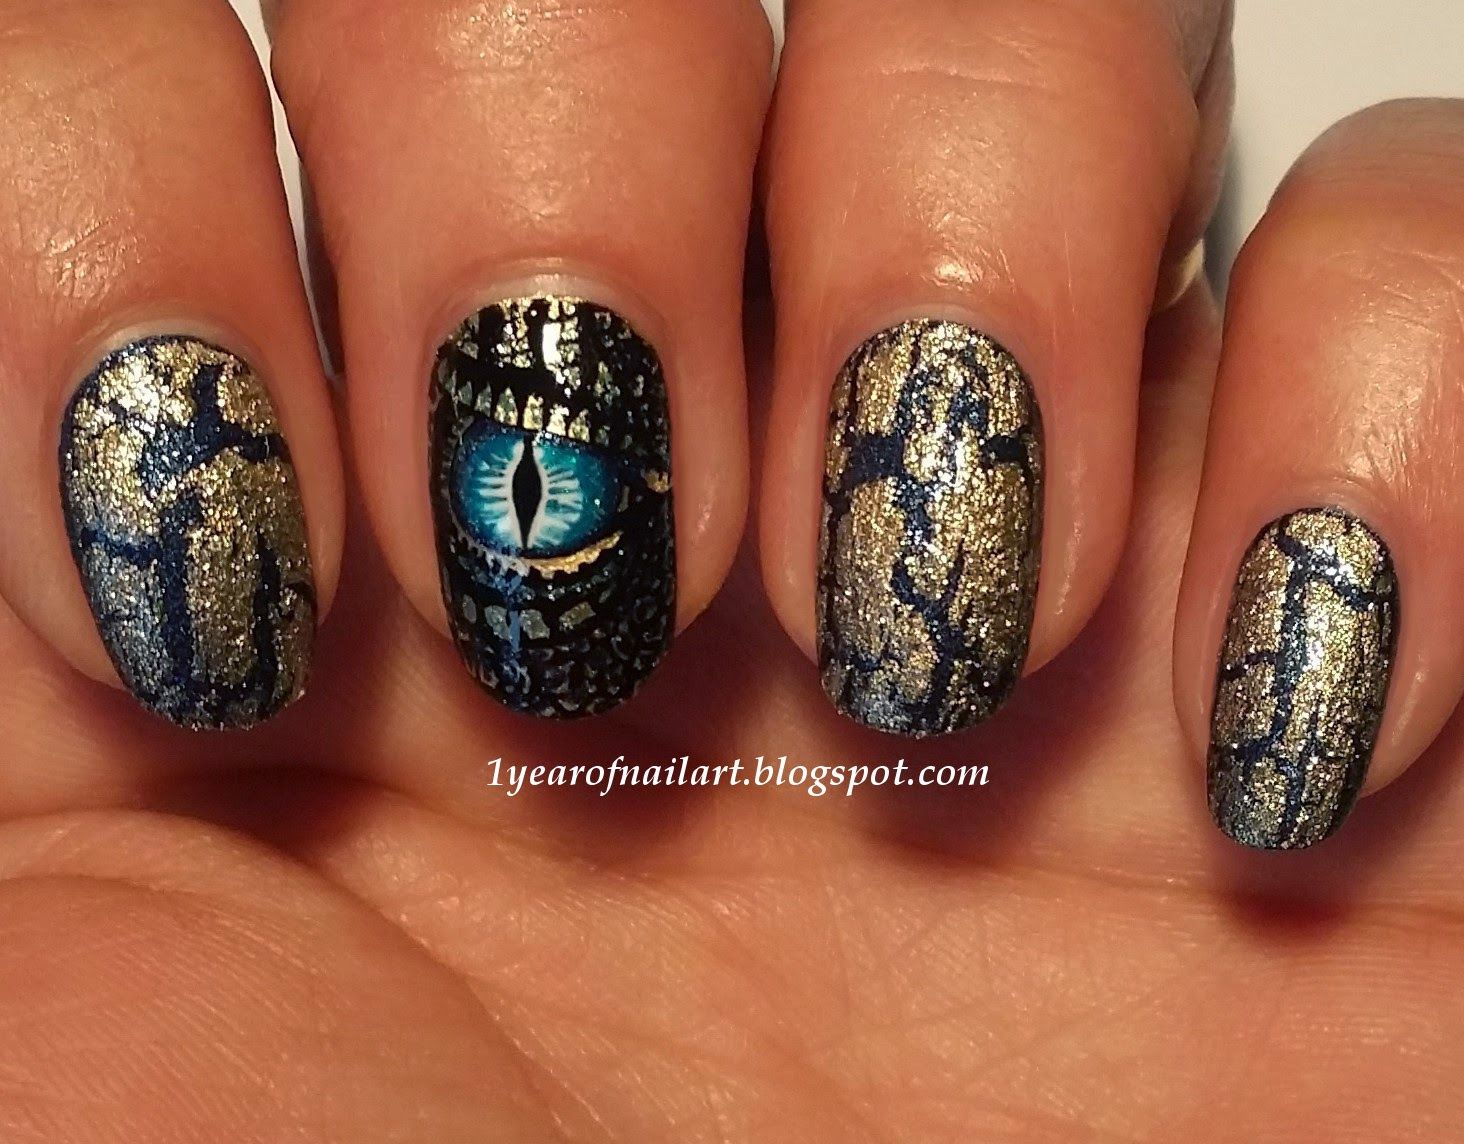 365 days of nail art : Dragon #nail #nails #nailart - 365 Days Of Nail Art : Dragon #nail #nails #nailart Nail Art